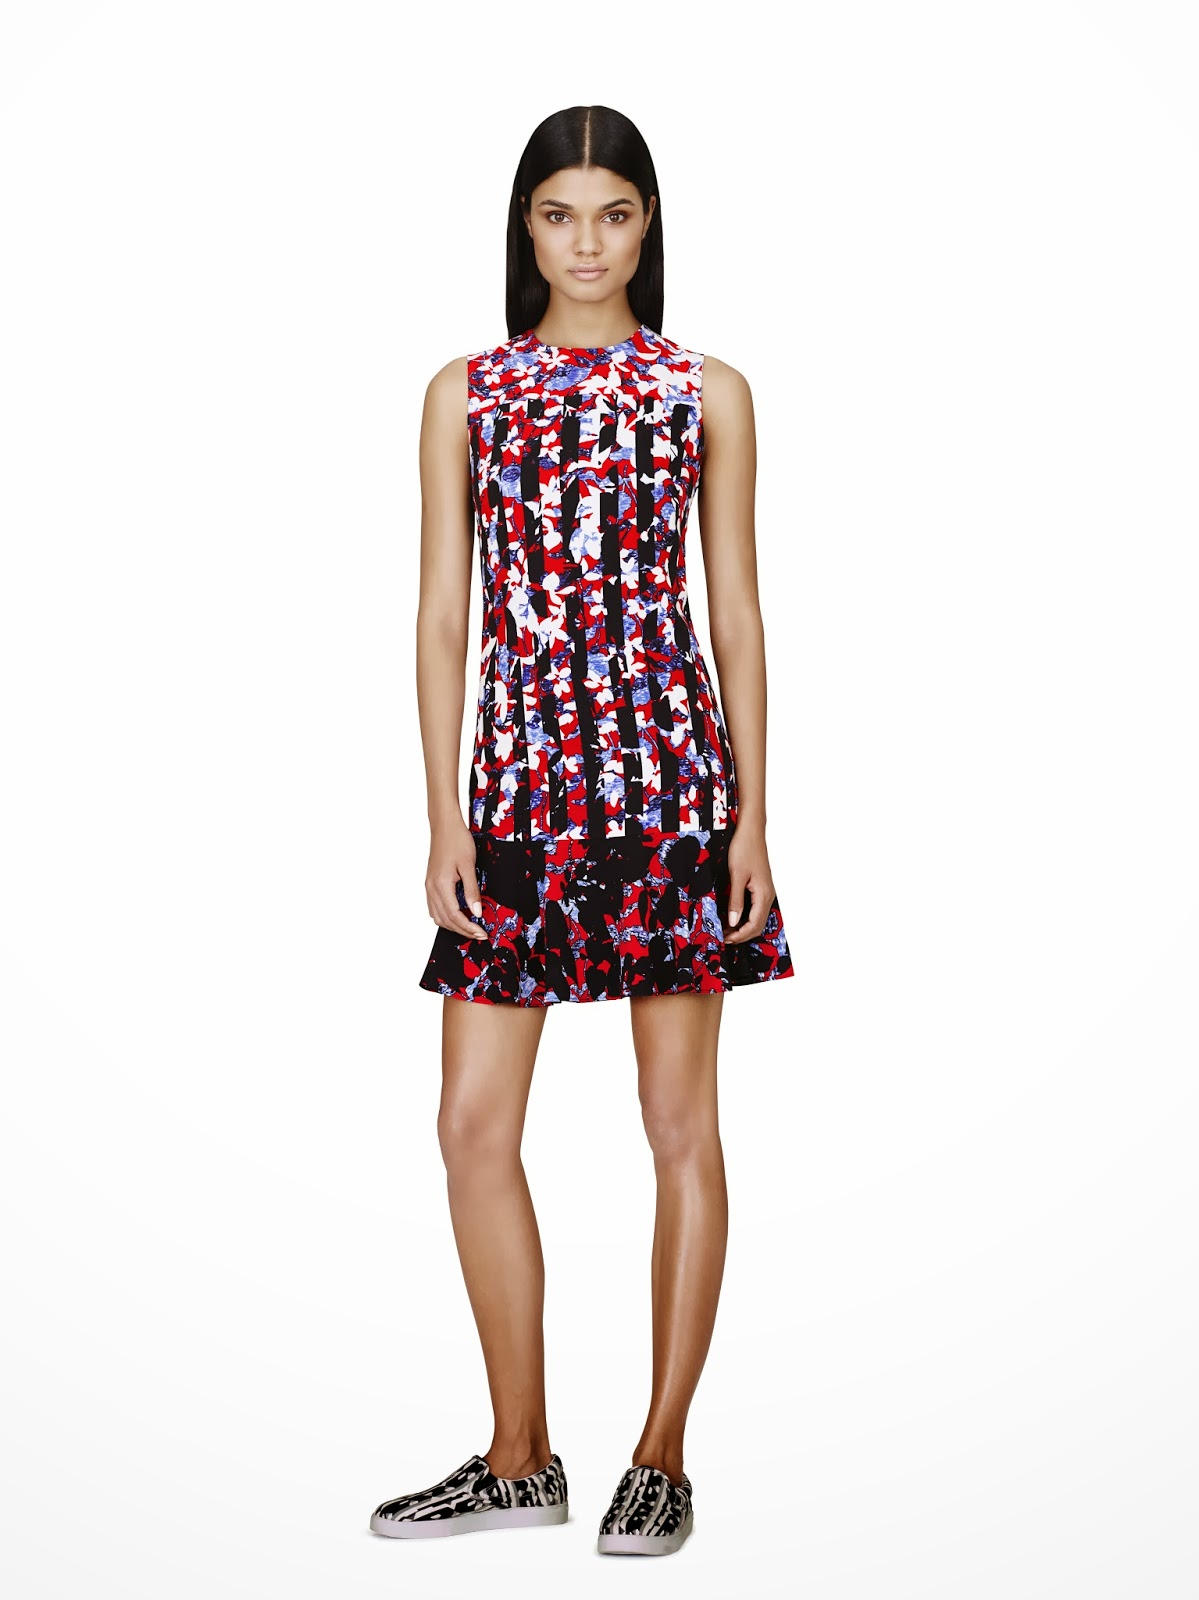 Peter-Pilotto-target, floral-dress, Spring-summer-collection, limited-edition